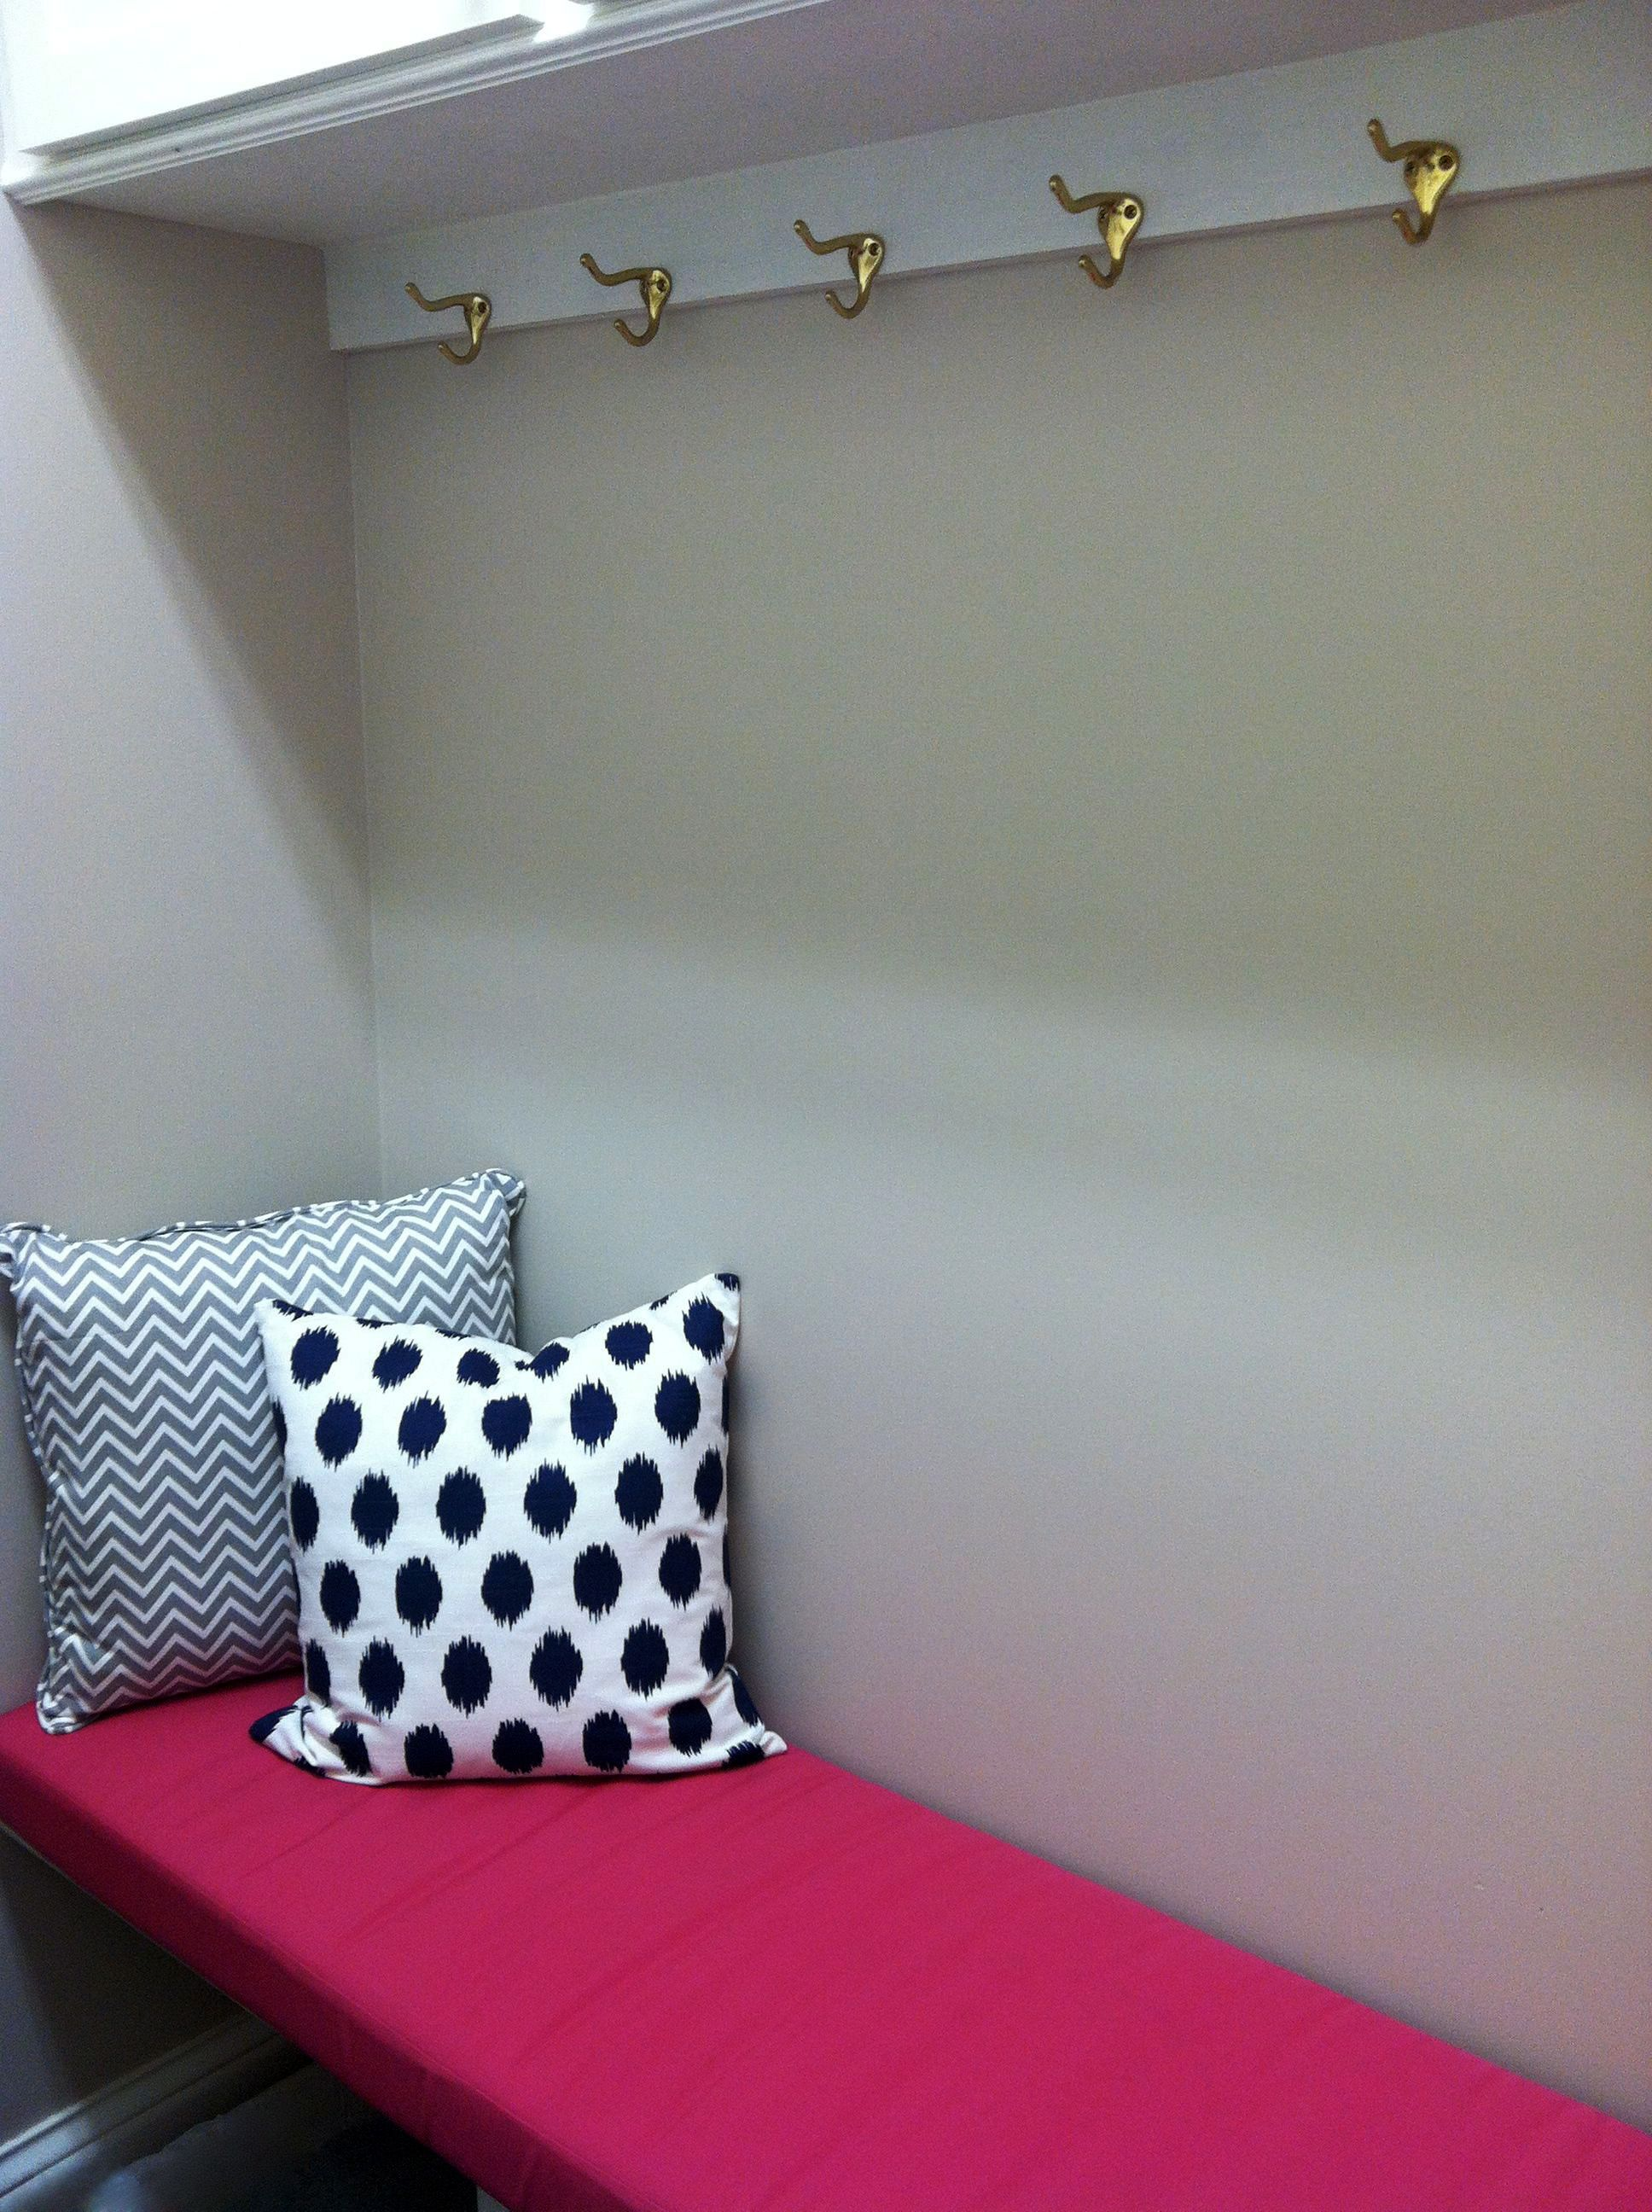 Customer photo hot pink cushion and pillows in mudroom